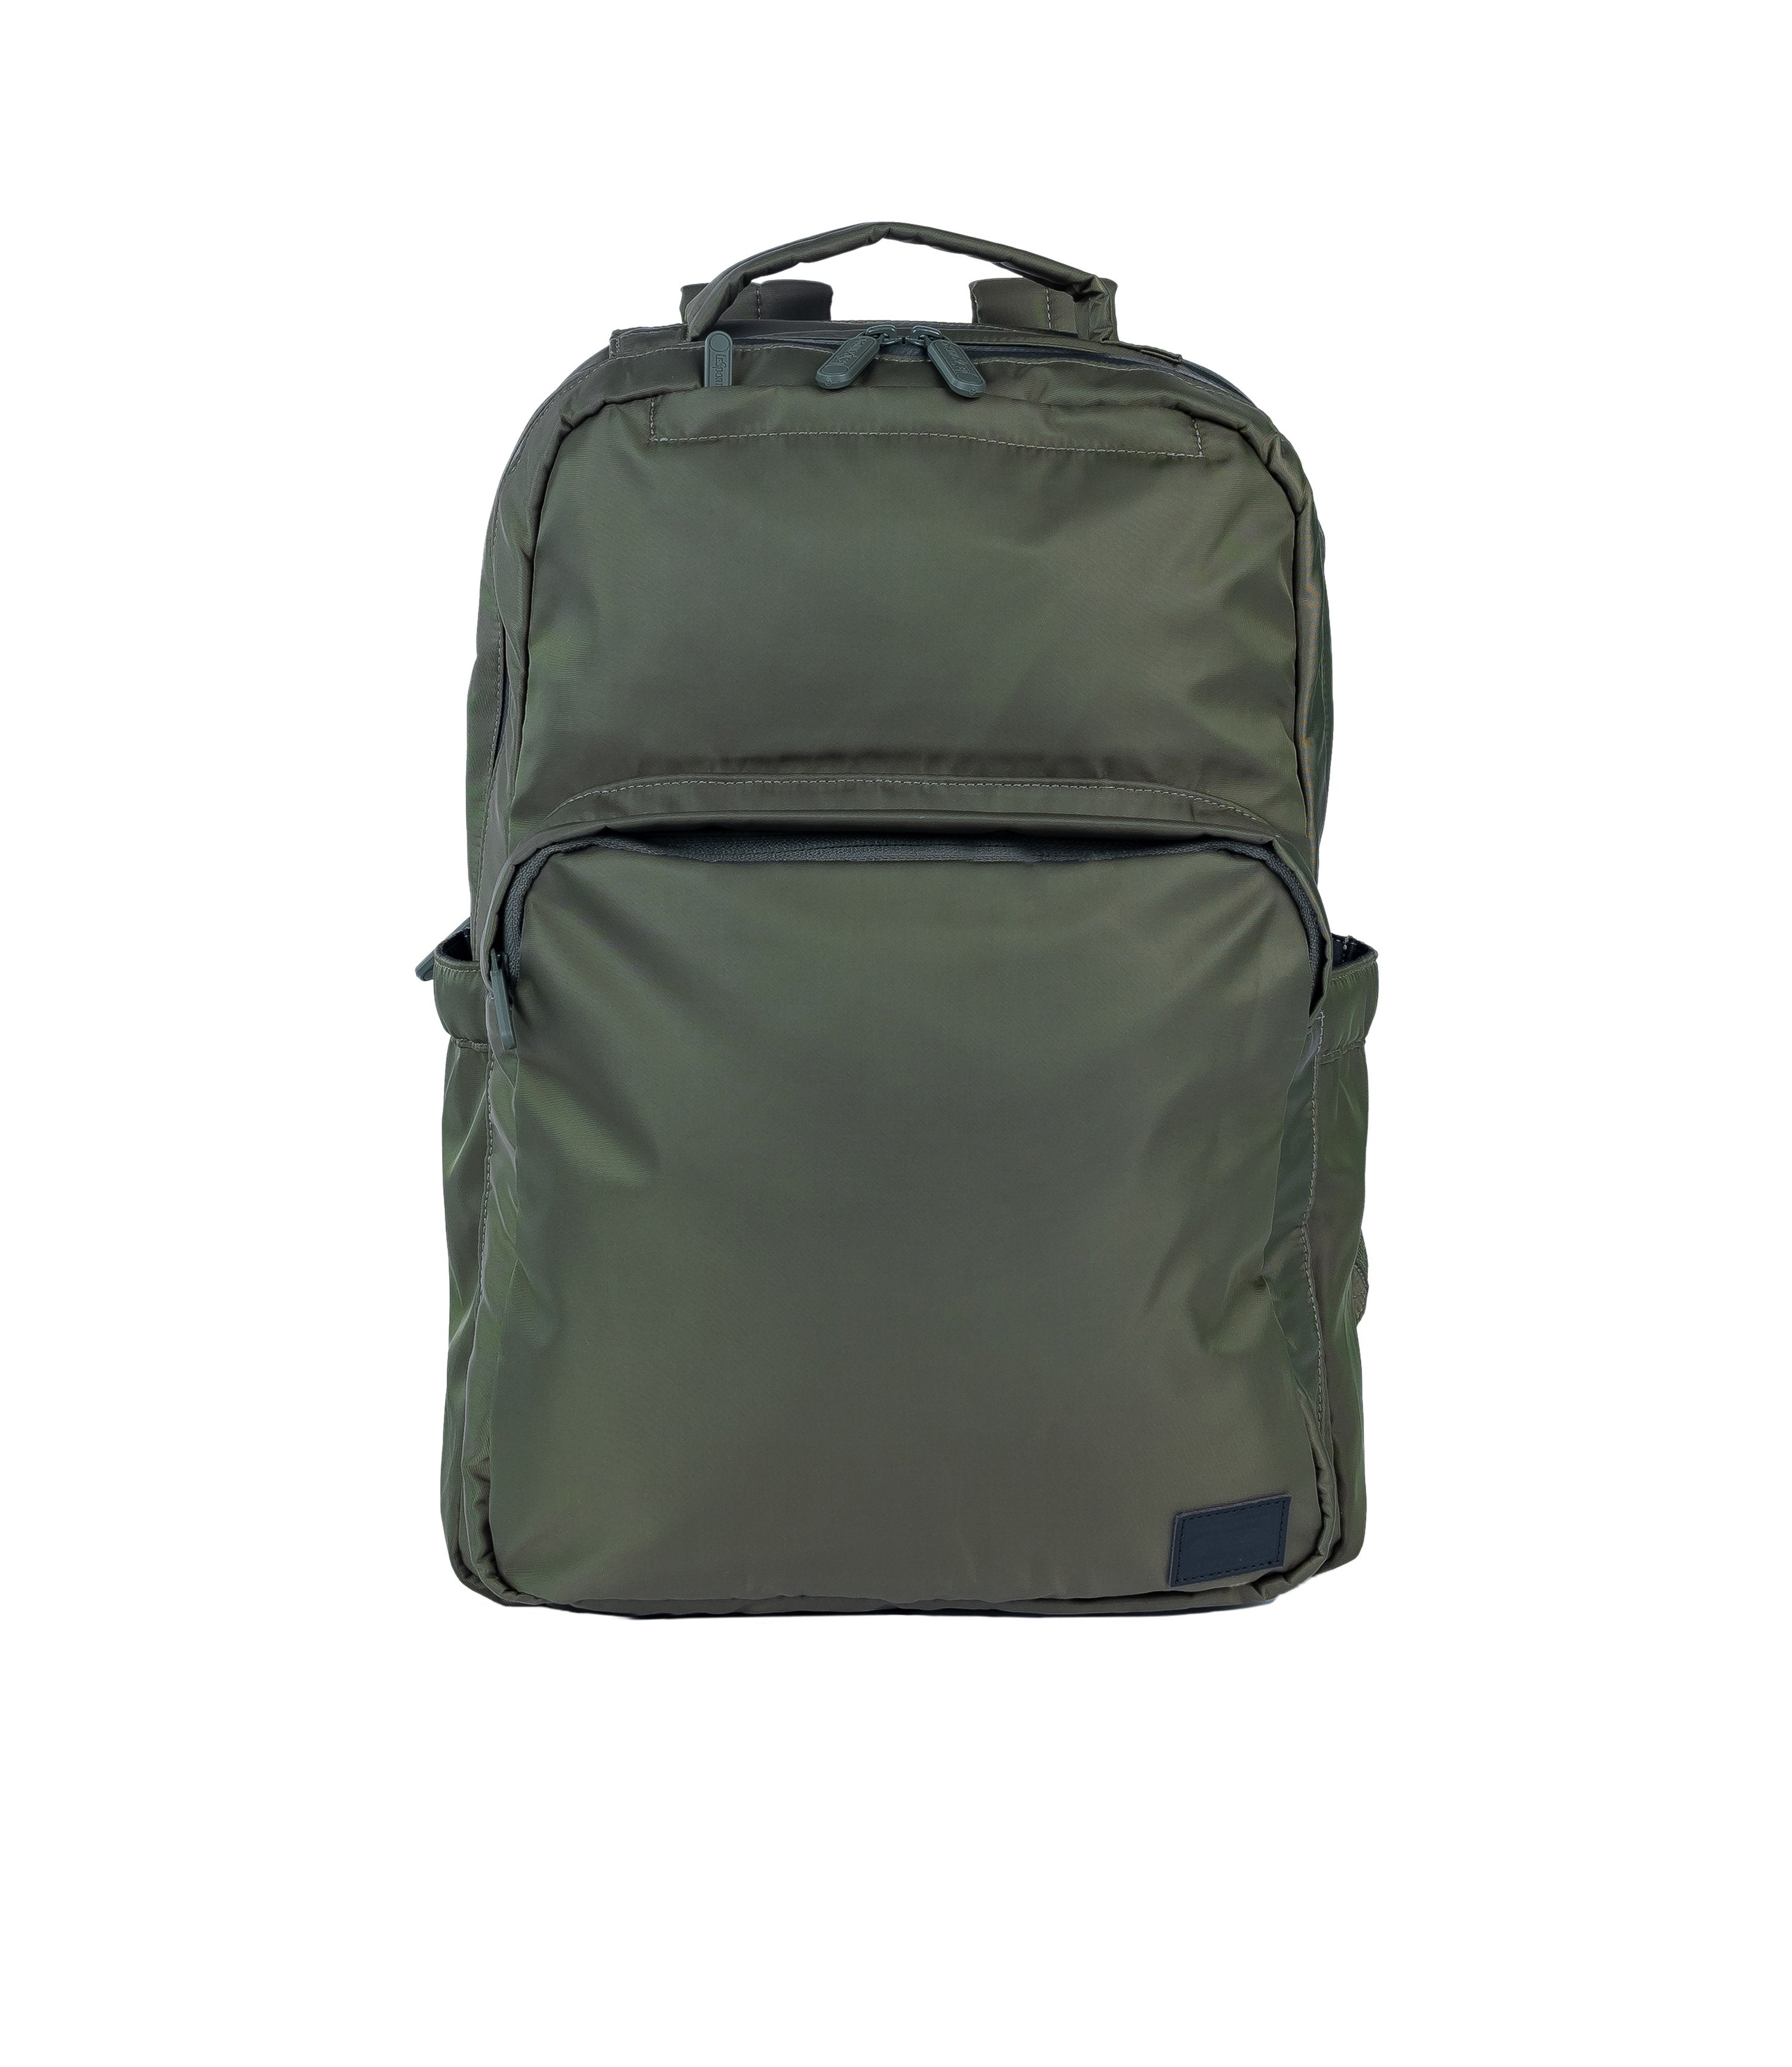 LeSportsac - Backpacks - Square Pocket Backpack - Everyday Green